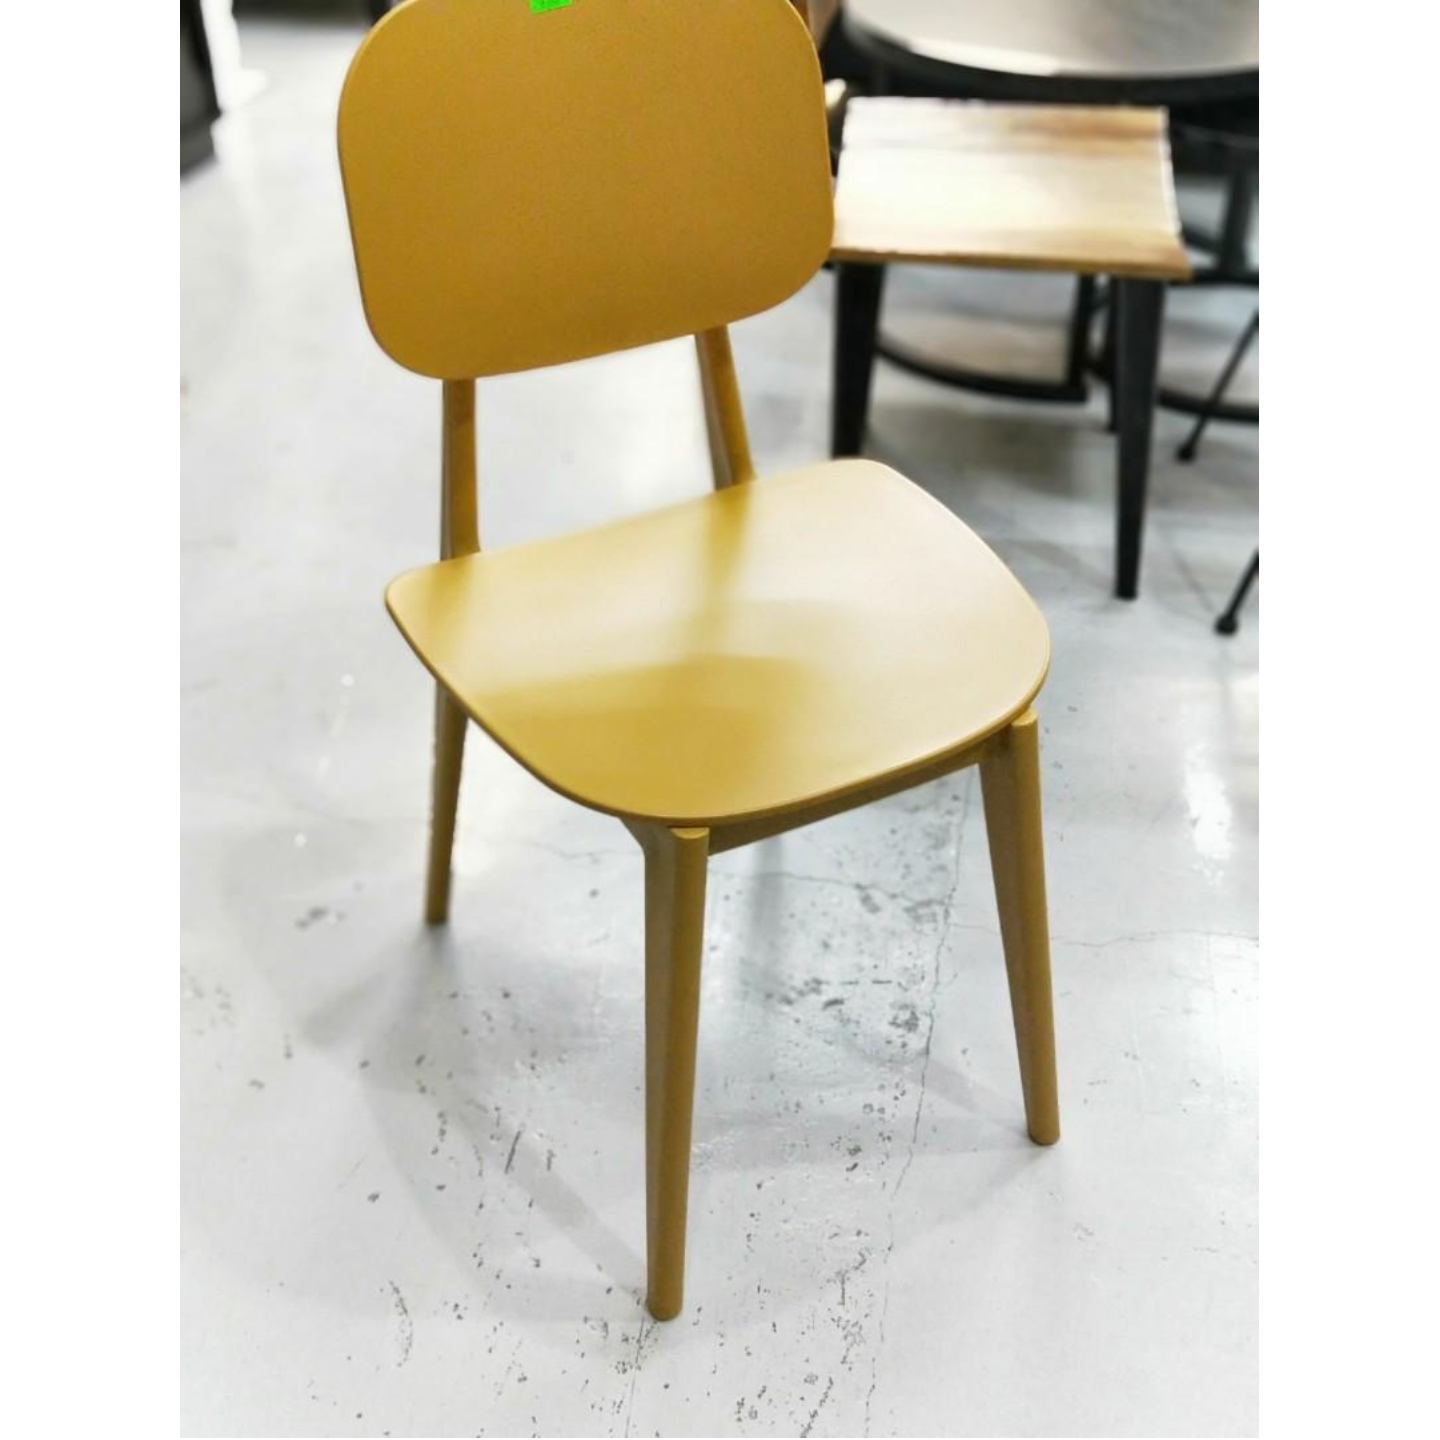 JERLIA Dining Chair in MUSTARD Yellow